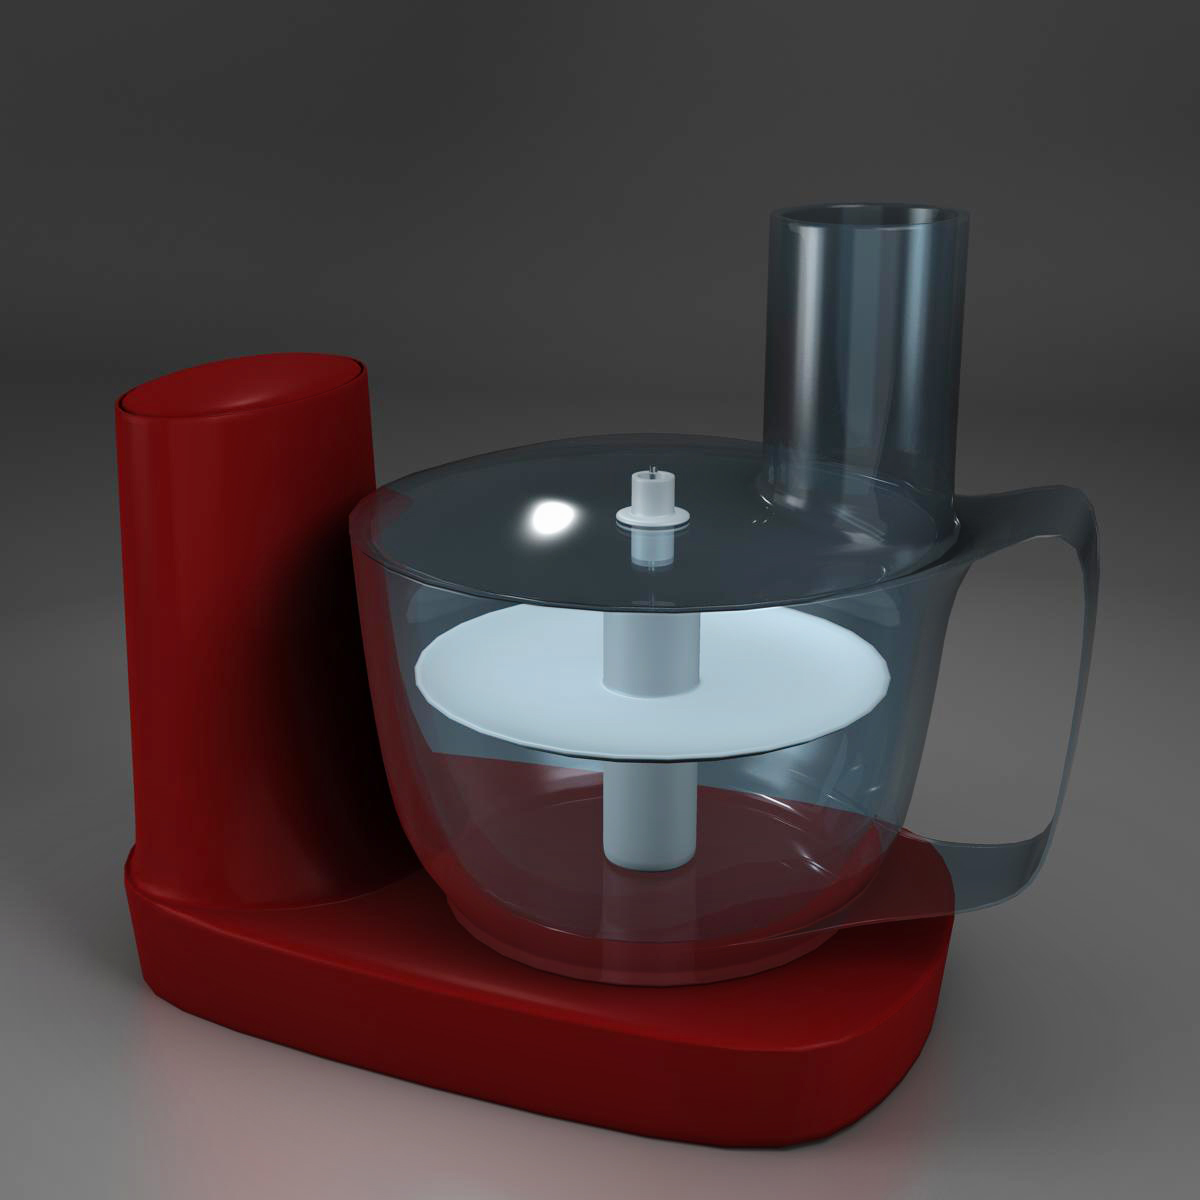 mixer 3d model 3ds max fbx c4d ma mb obj 159404